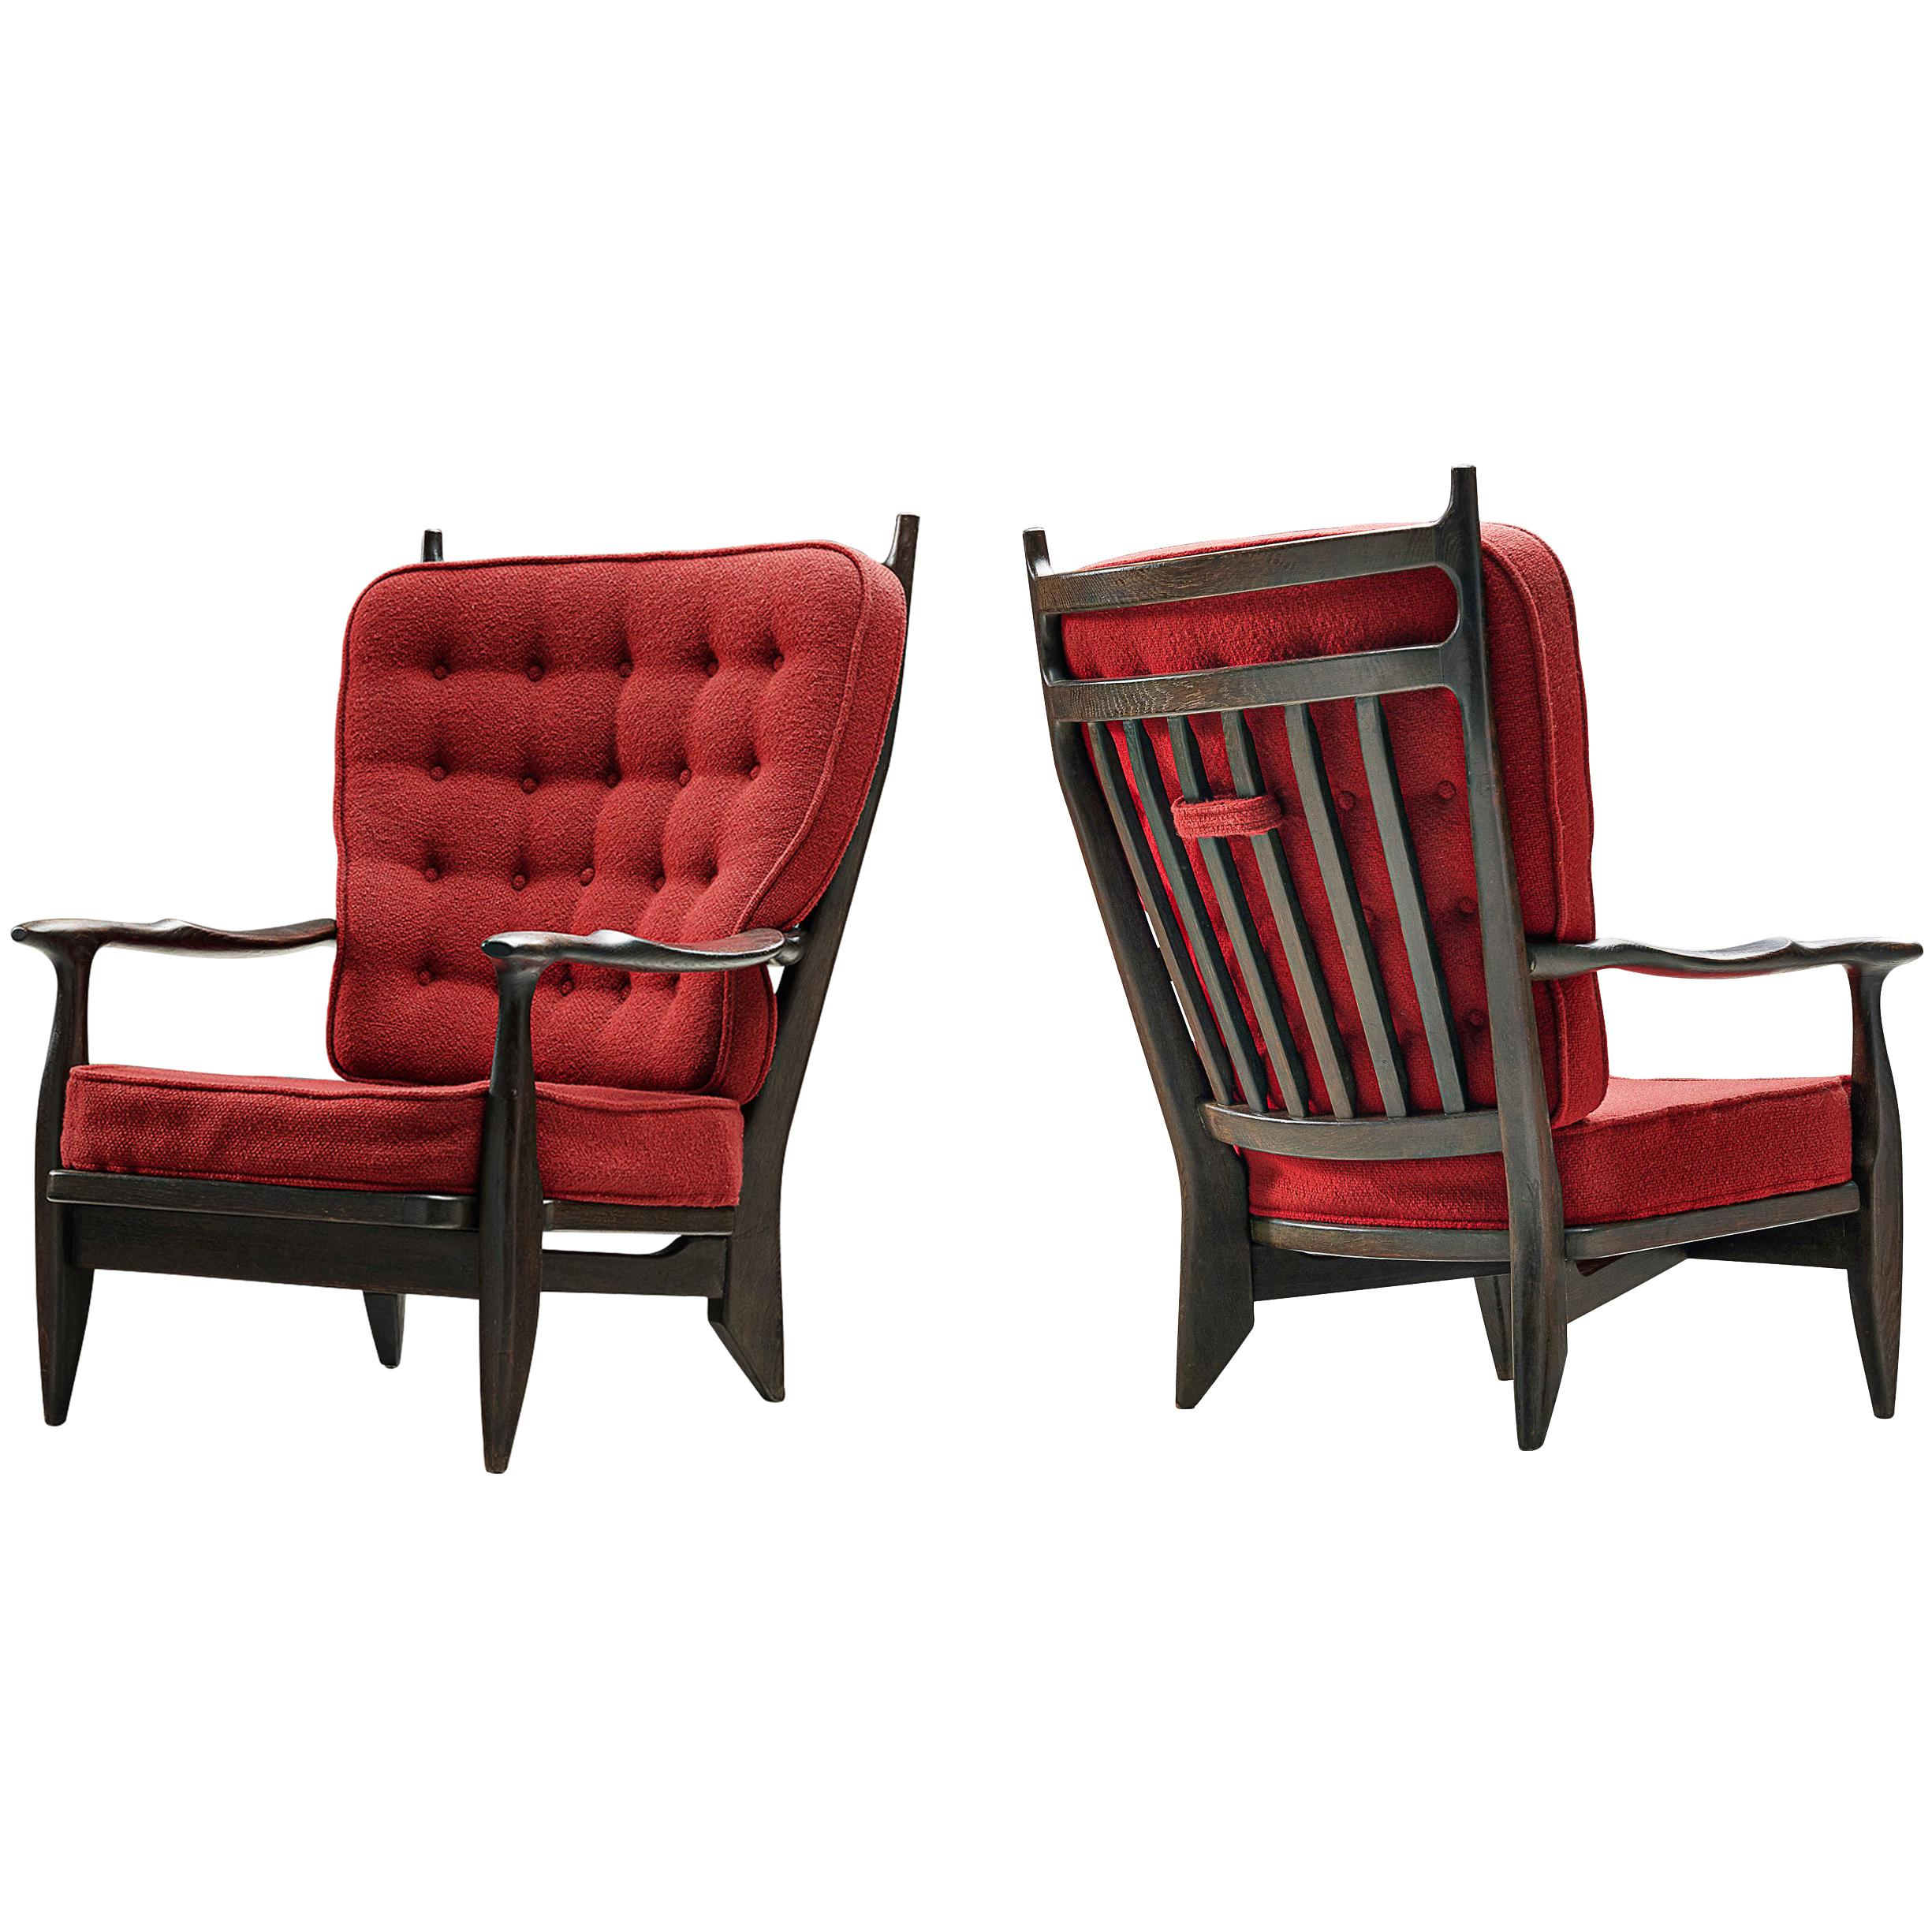 Guillerme et Chambron Pair of Lounge Chairs in Oak with Red Upholstery